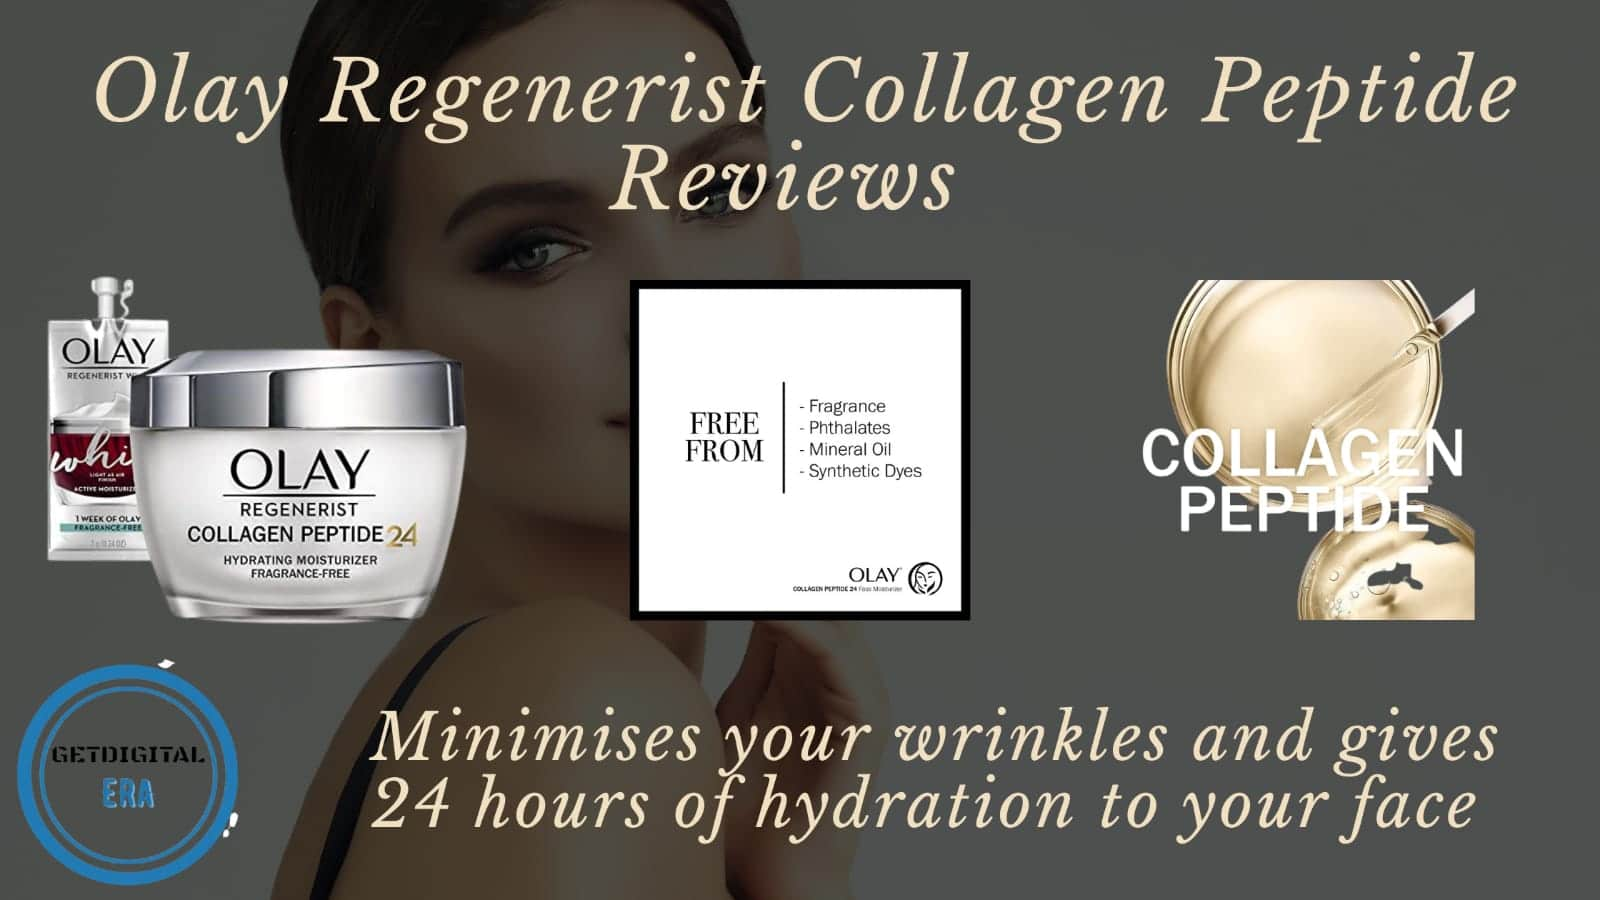 Olay Regenerist Collagen Peptide Reviews